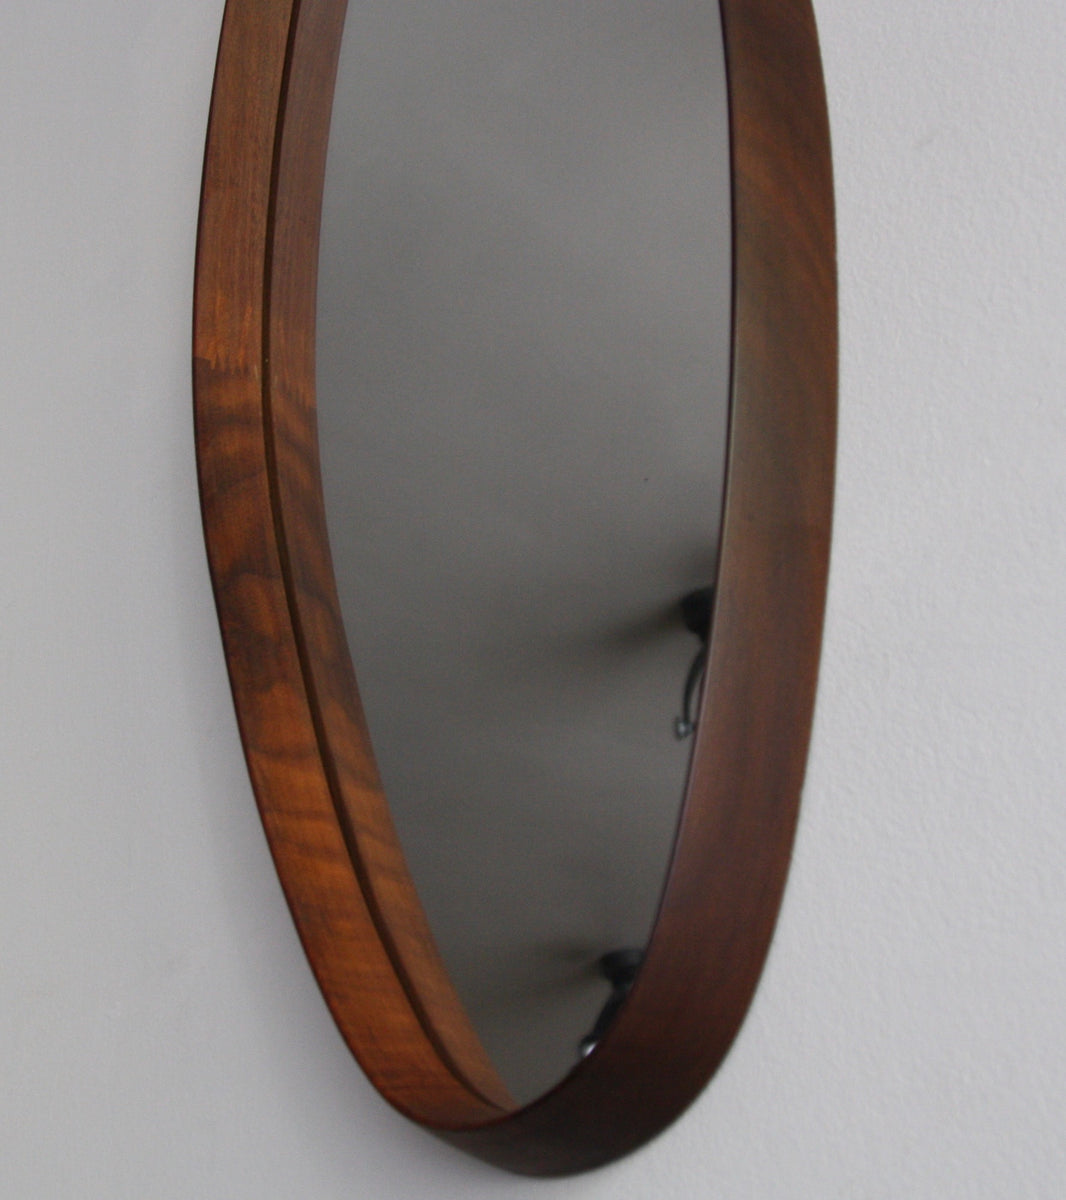 Original Danish, Oblong Teak Mirror with Chain (side view), C. 1950